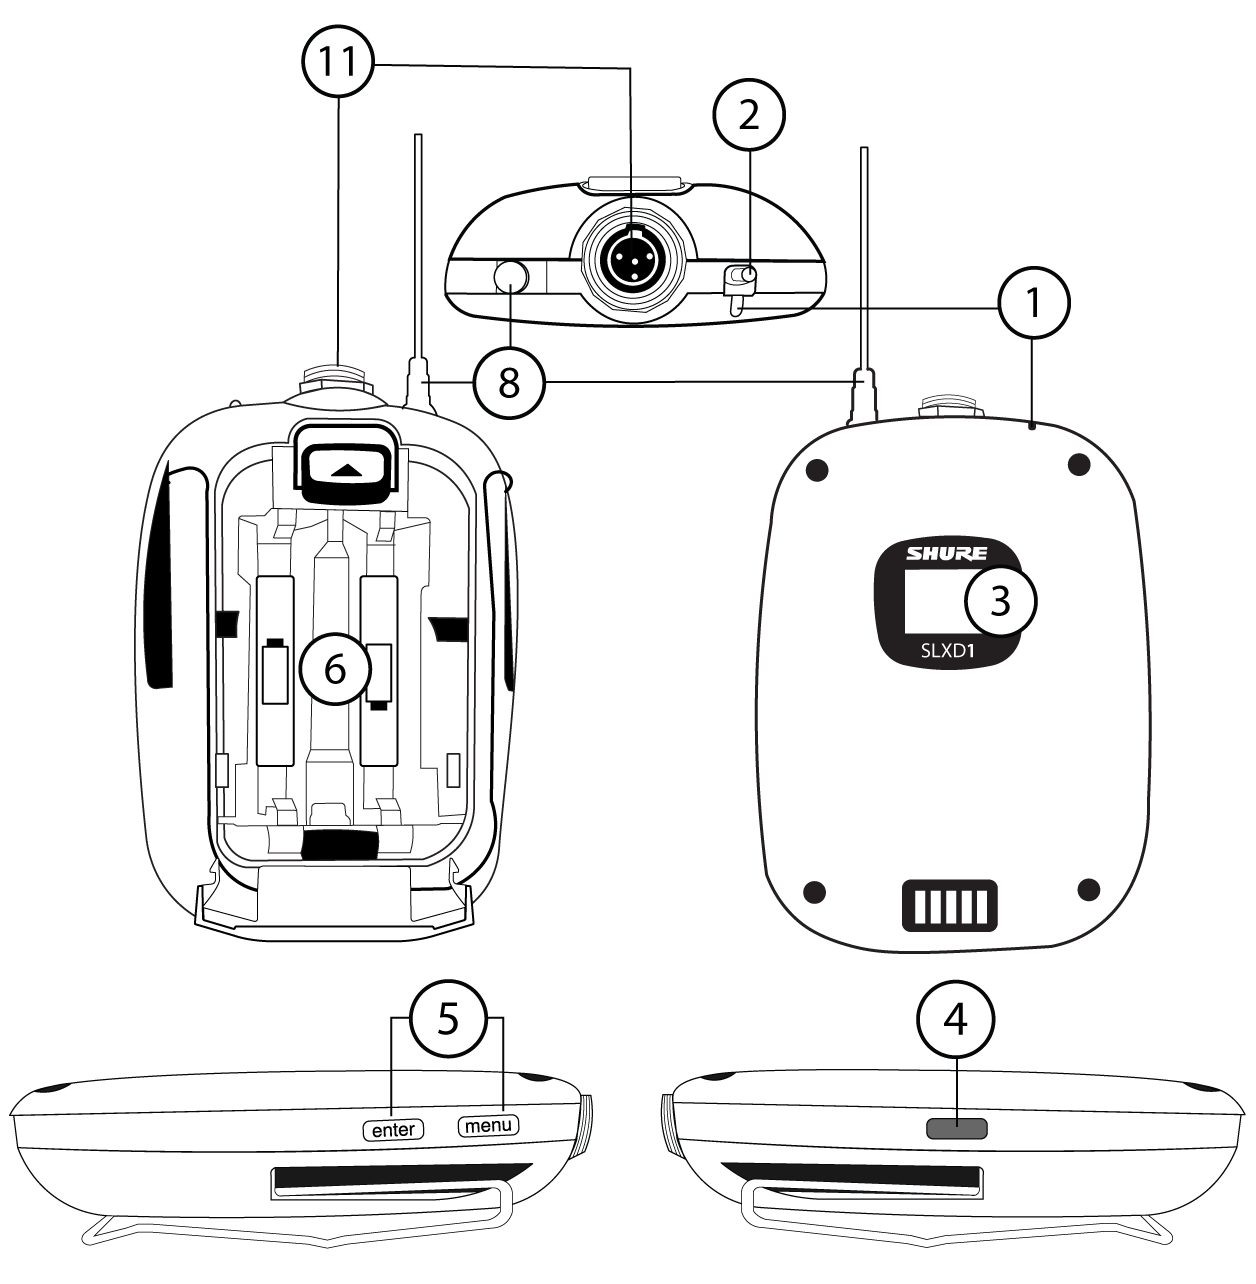 A diagram of the SLXD1 bodypack transmitter, with numbers calling out each feature.